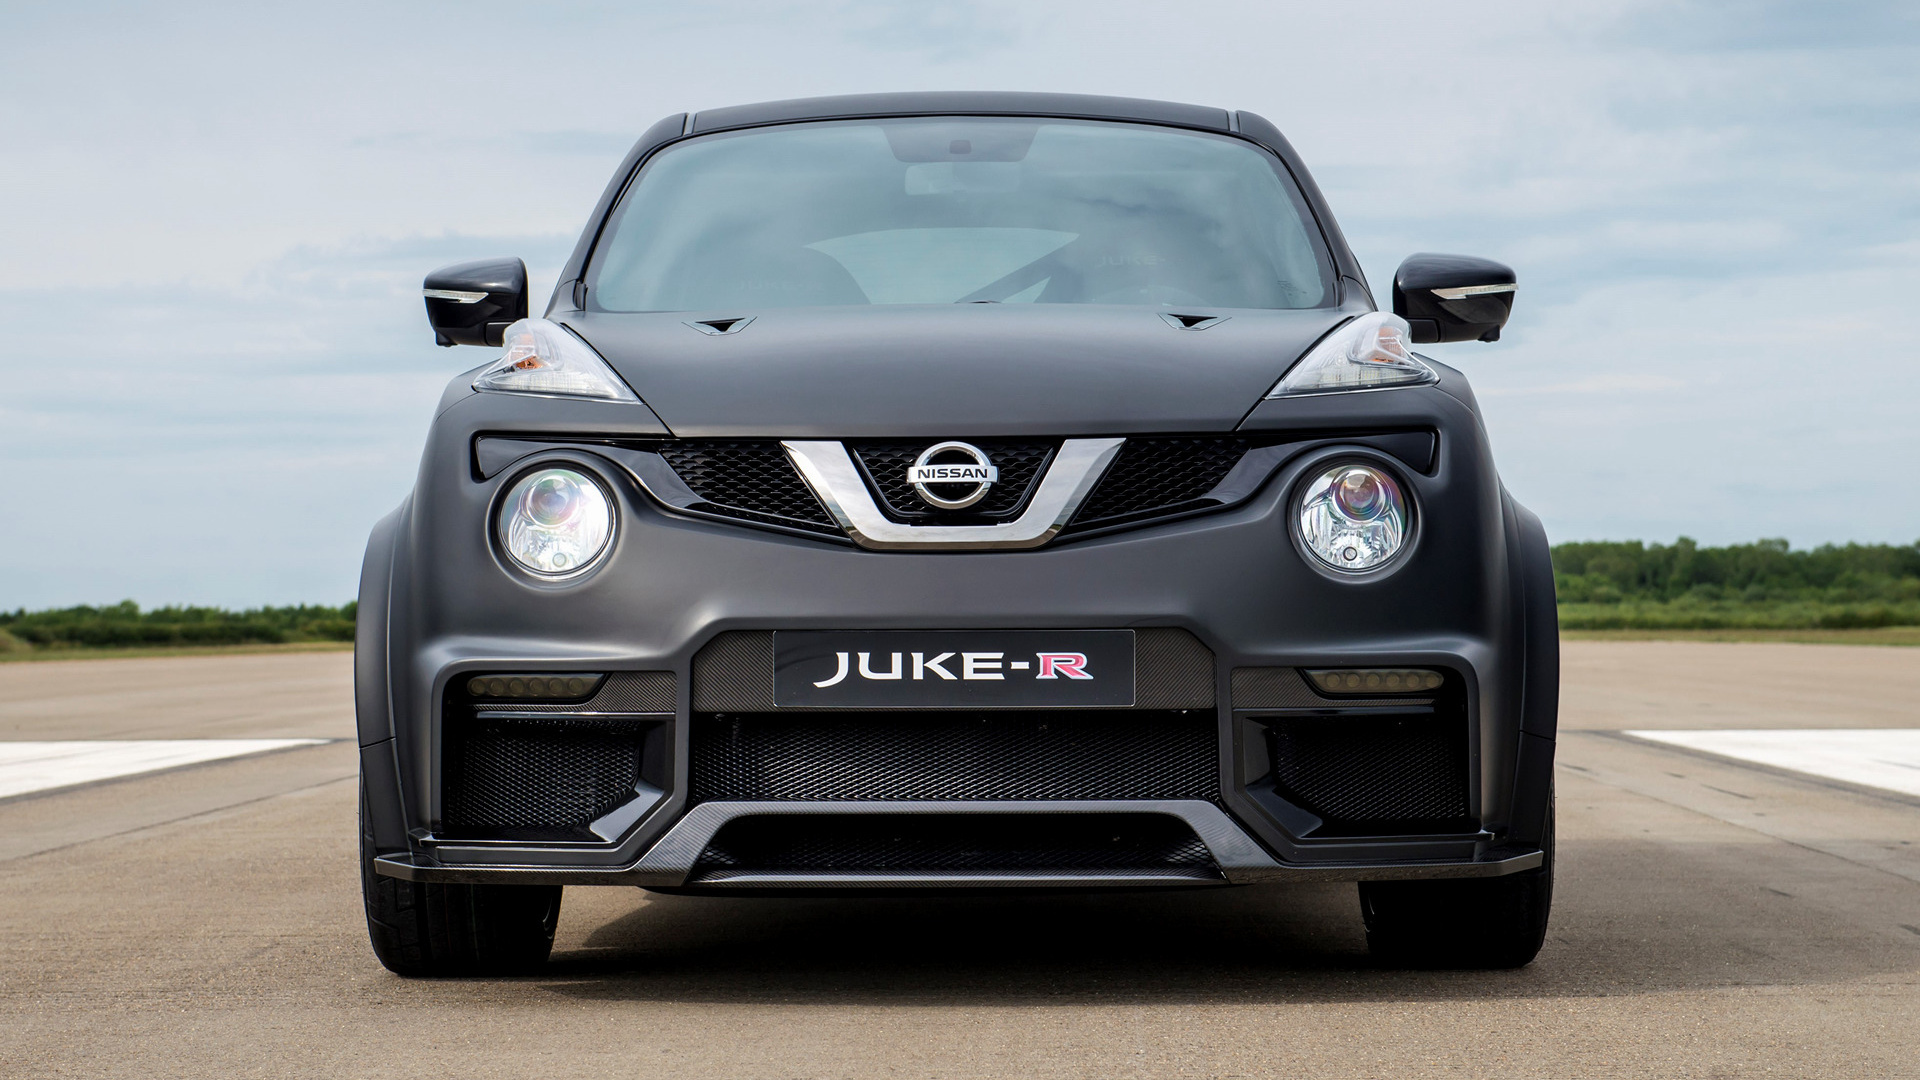 nissan juke r 2 0 concept 2015 wallpapers and hd images car pixel. Black Bedroom Furniture Sets. Home Design Ideas